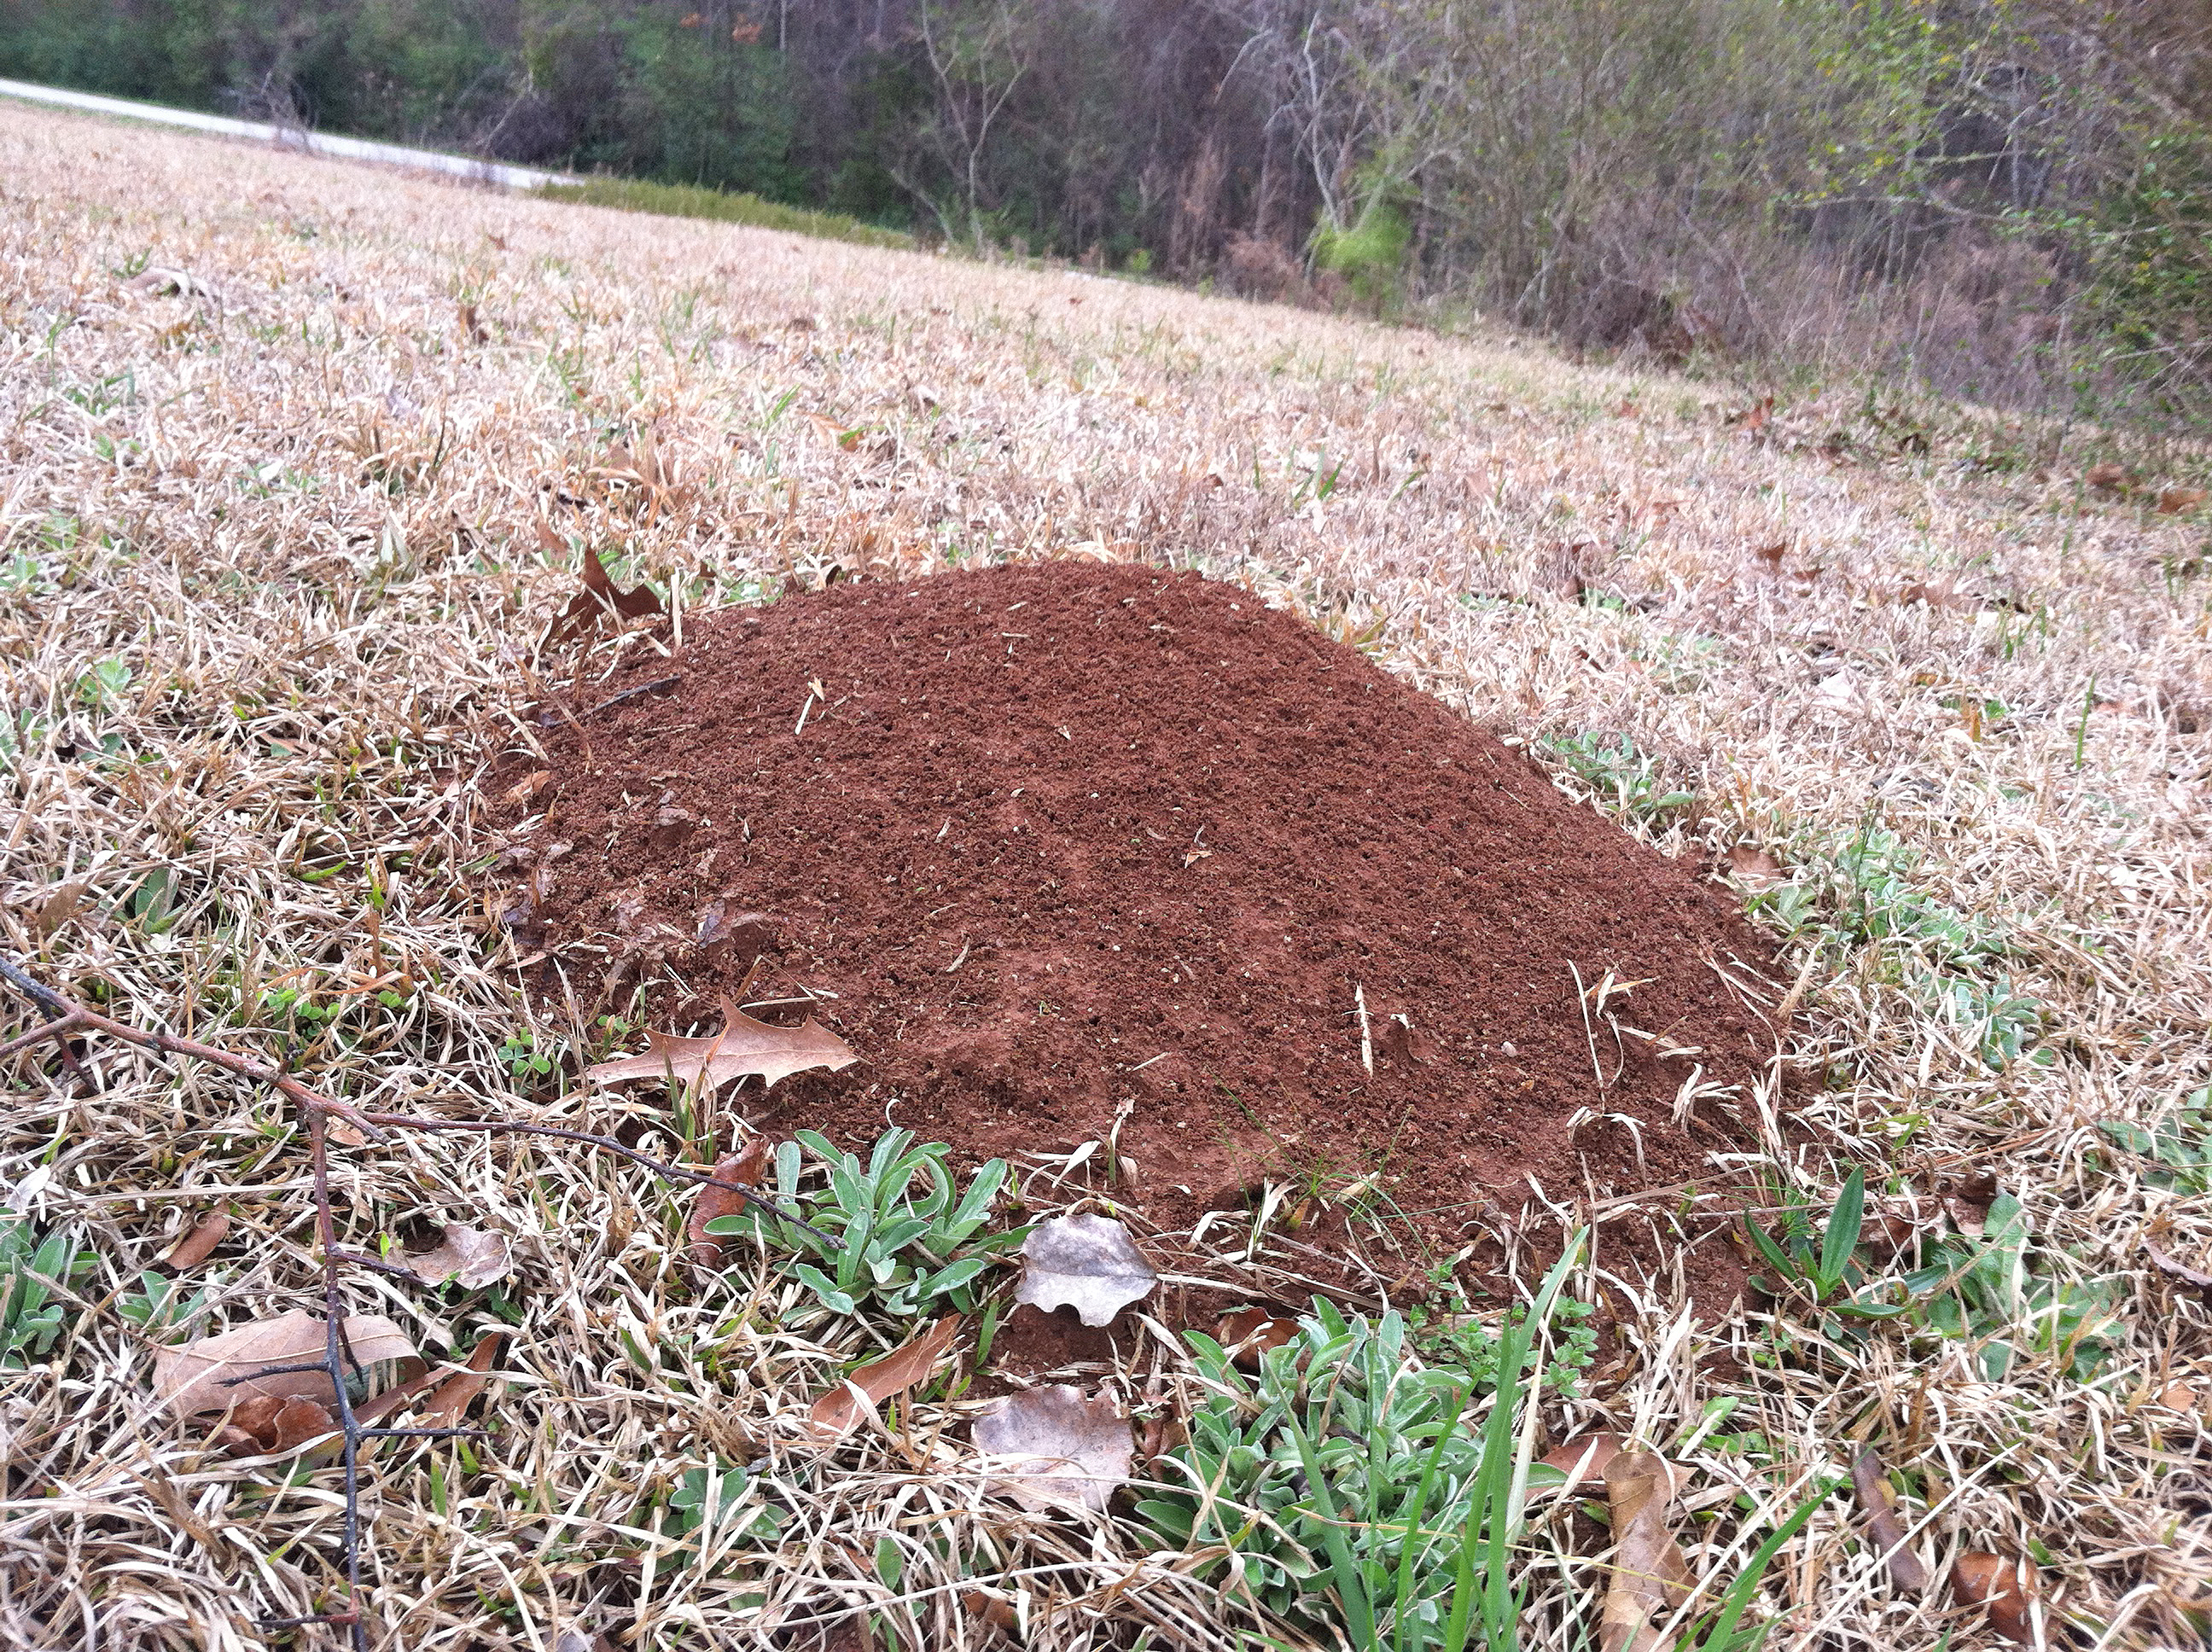 University of Georgia experts say using two steps to treat fire ant mounds this fall will cut down their numbers in the spring.